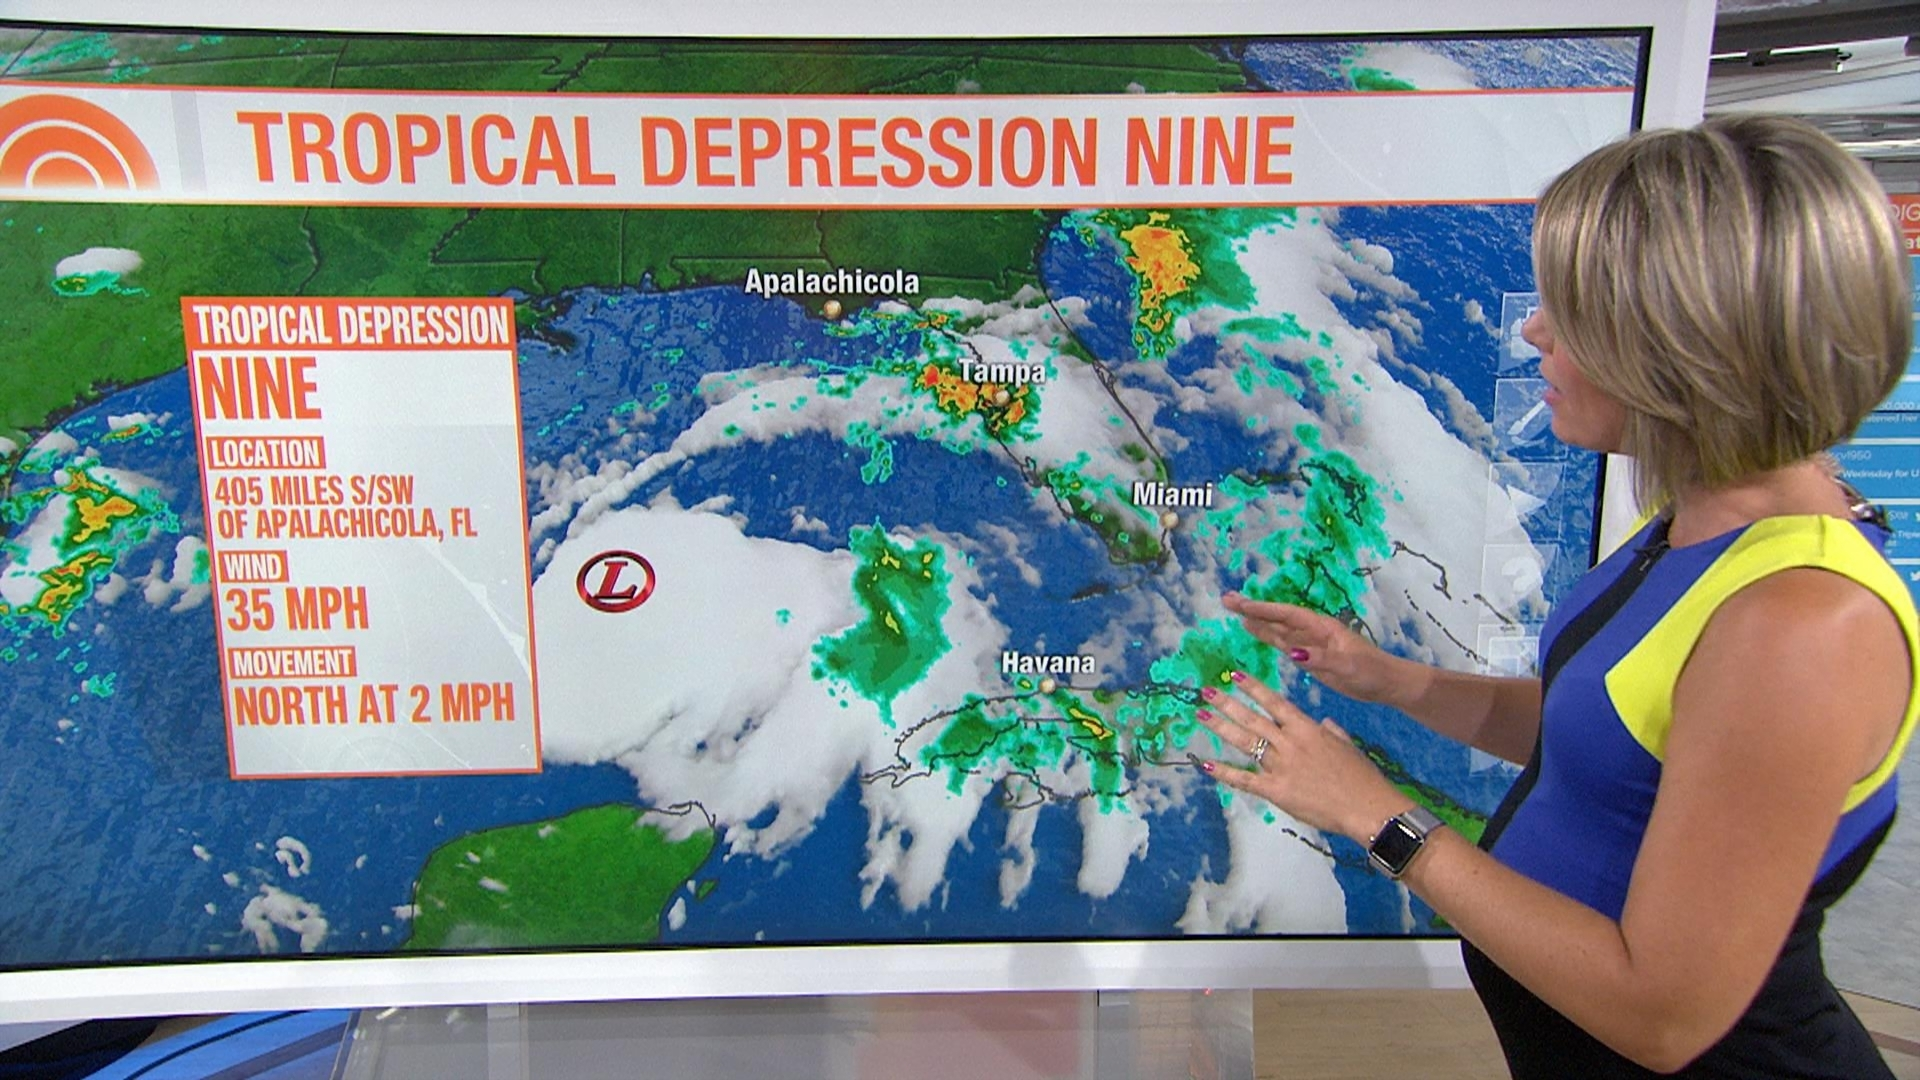 Gulf system expected to become Tropical Storm Hermine   NBC News